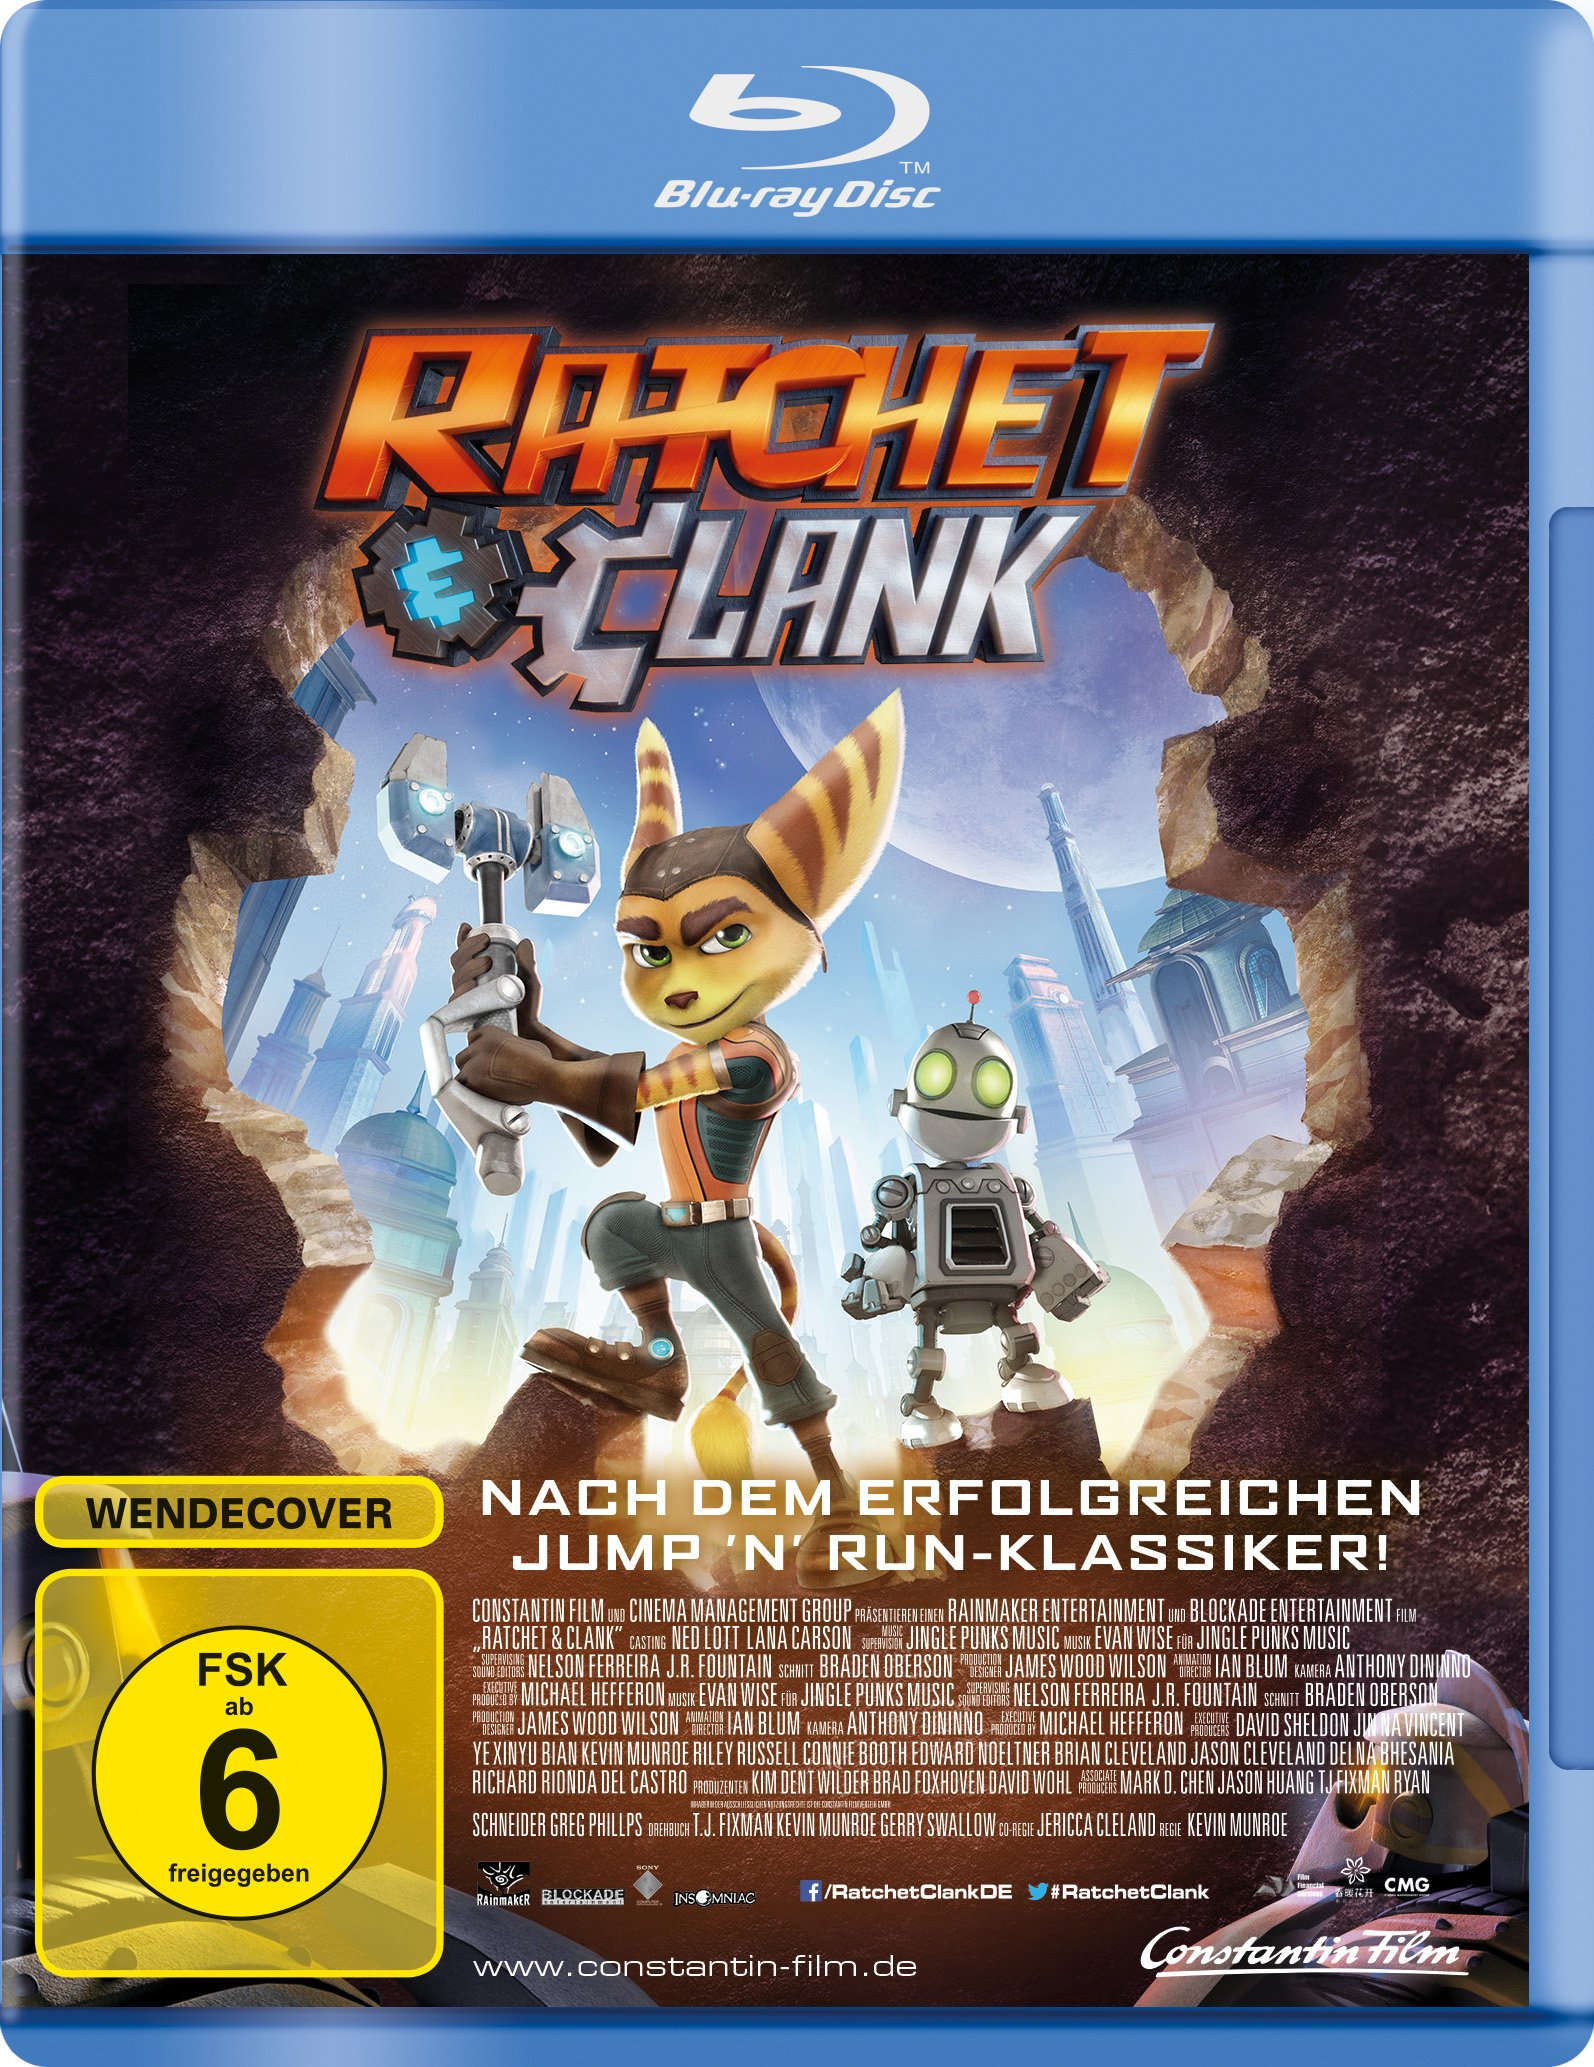 5yq5rzx9 in Ratchet und Clank 2016 German DTS DL 1080p BluRay x264